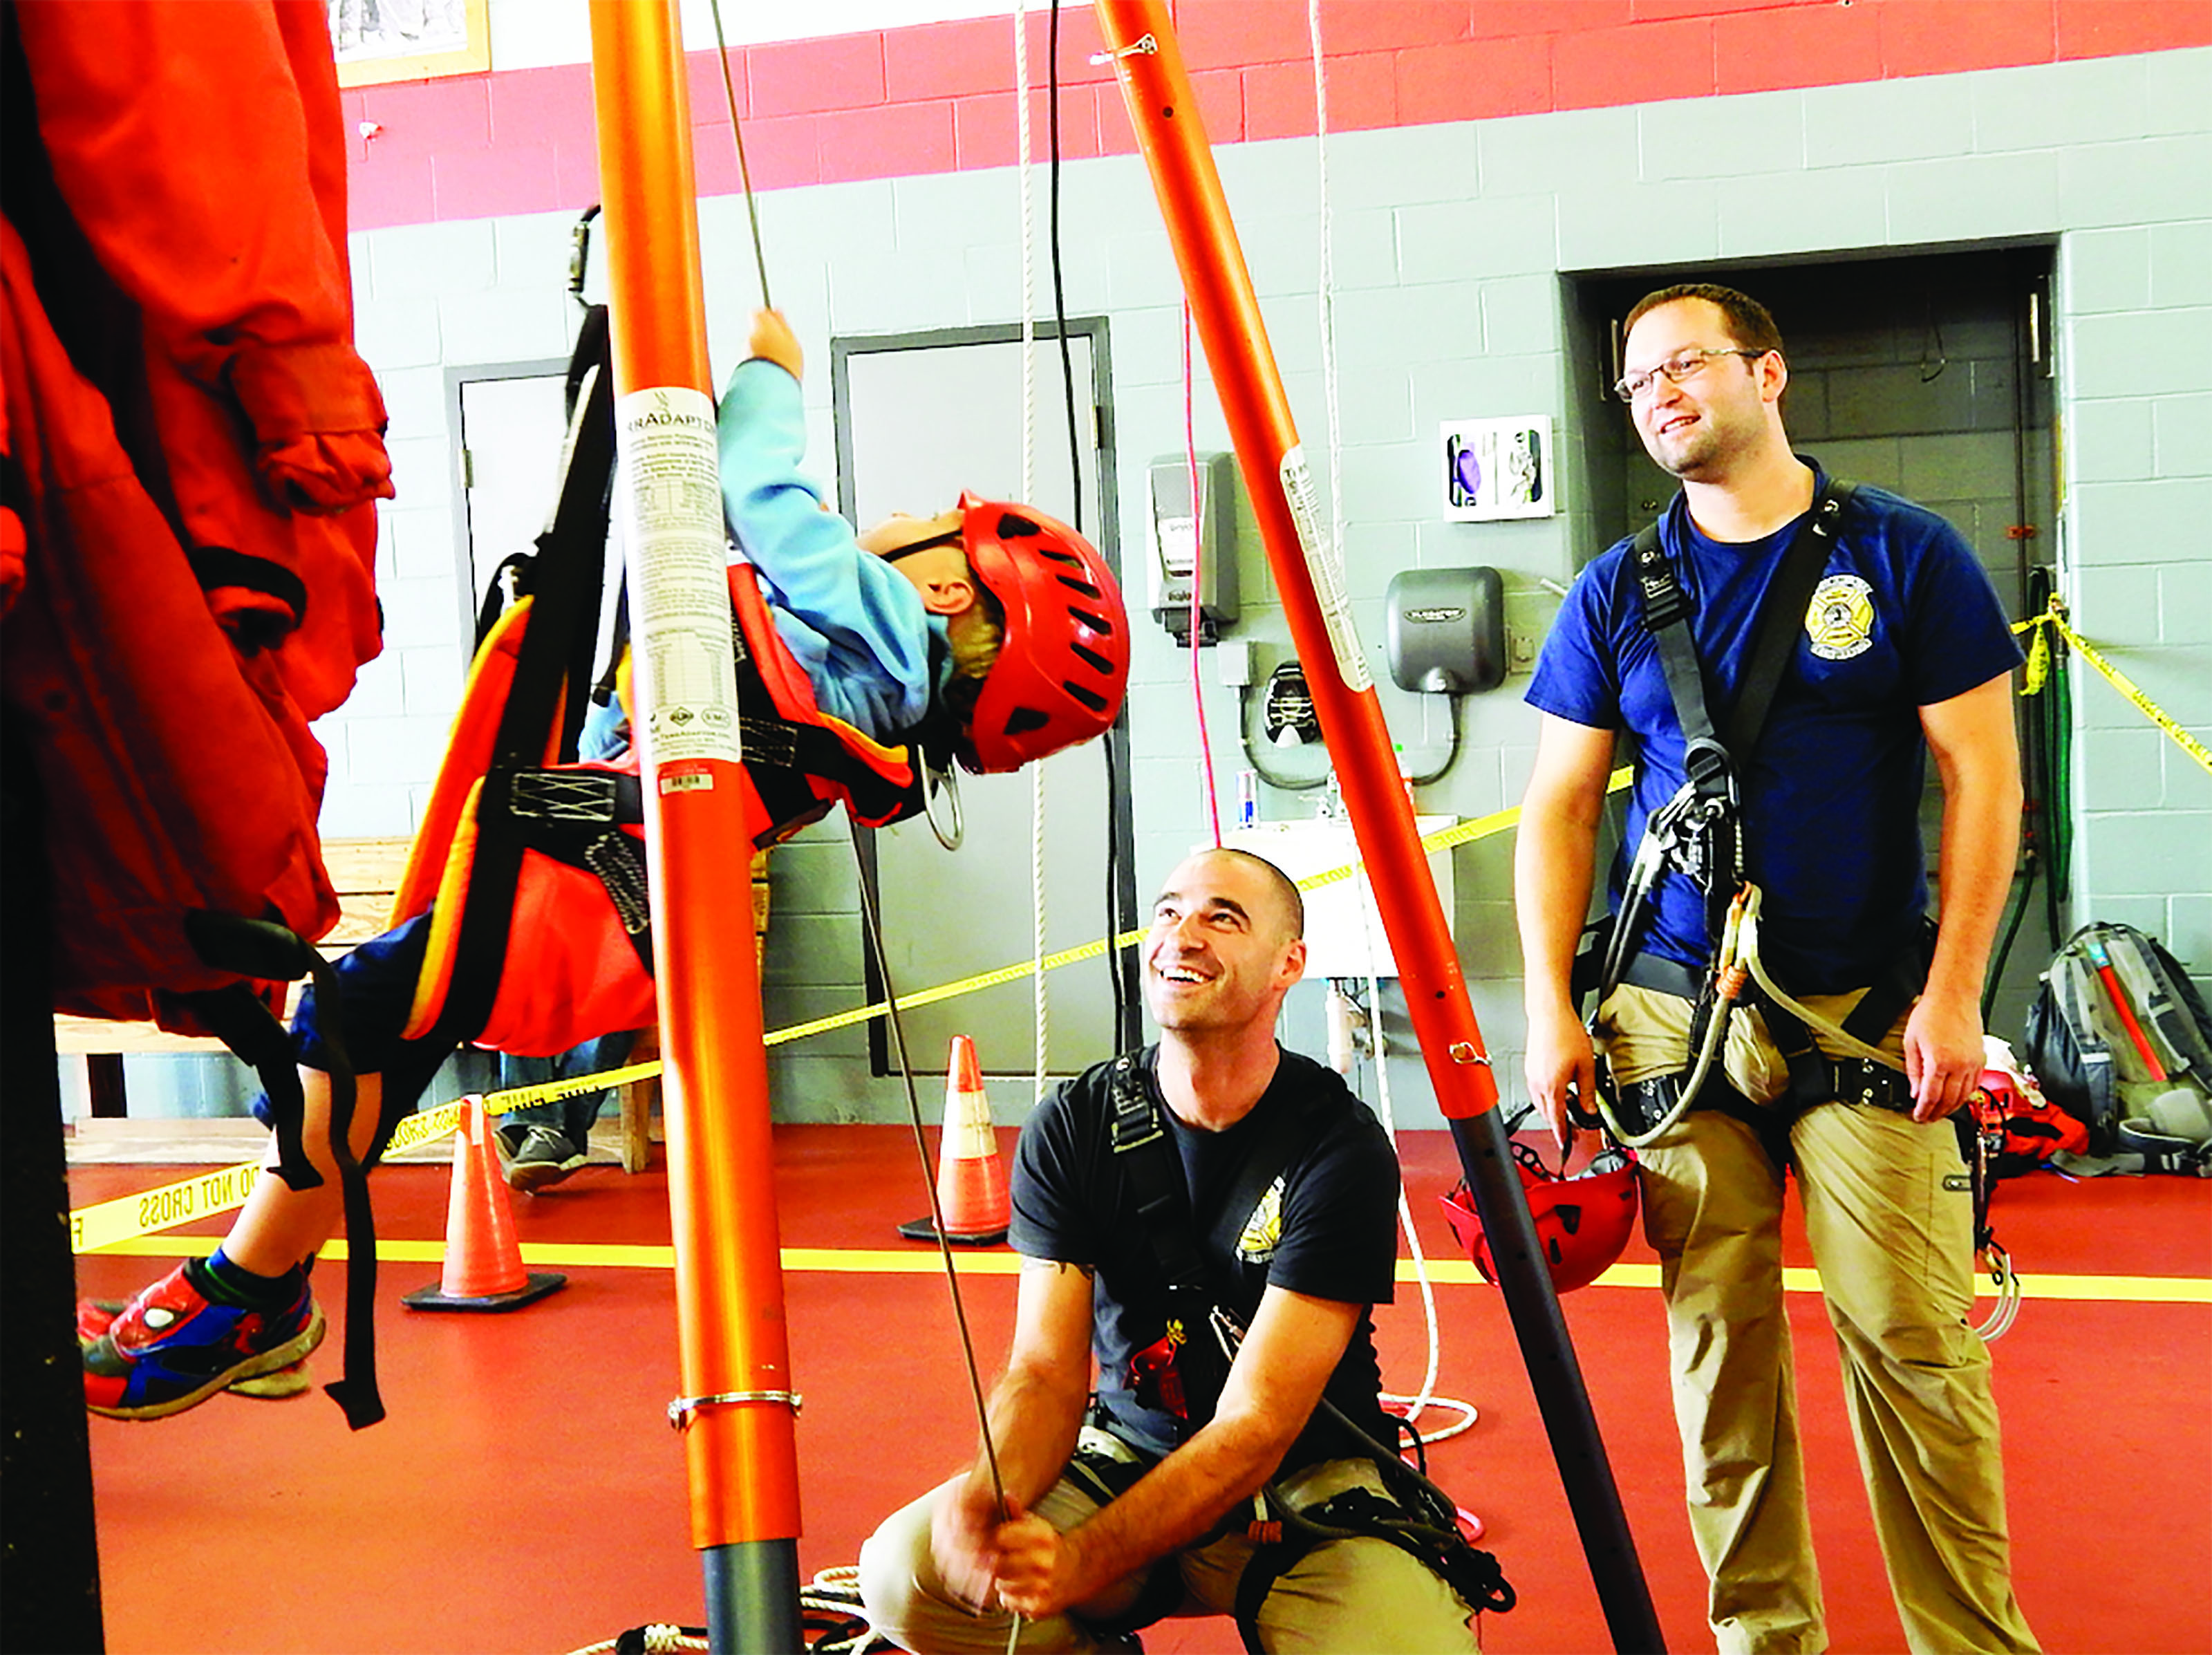 Biddeford firefighters teach a child how to rappel during the fire department's annual open house held at the Biddeford Fire Station on Saturday. ED PIERCE/Journal Tribune